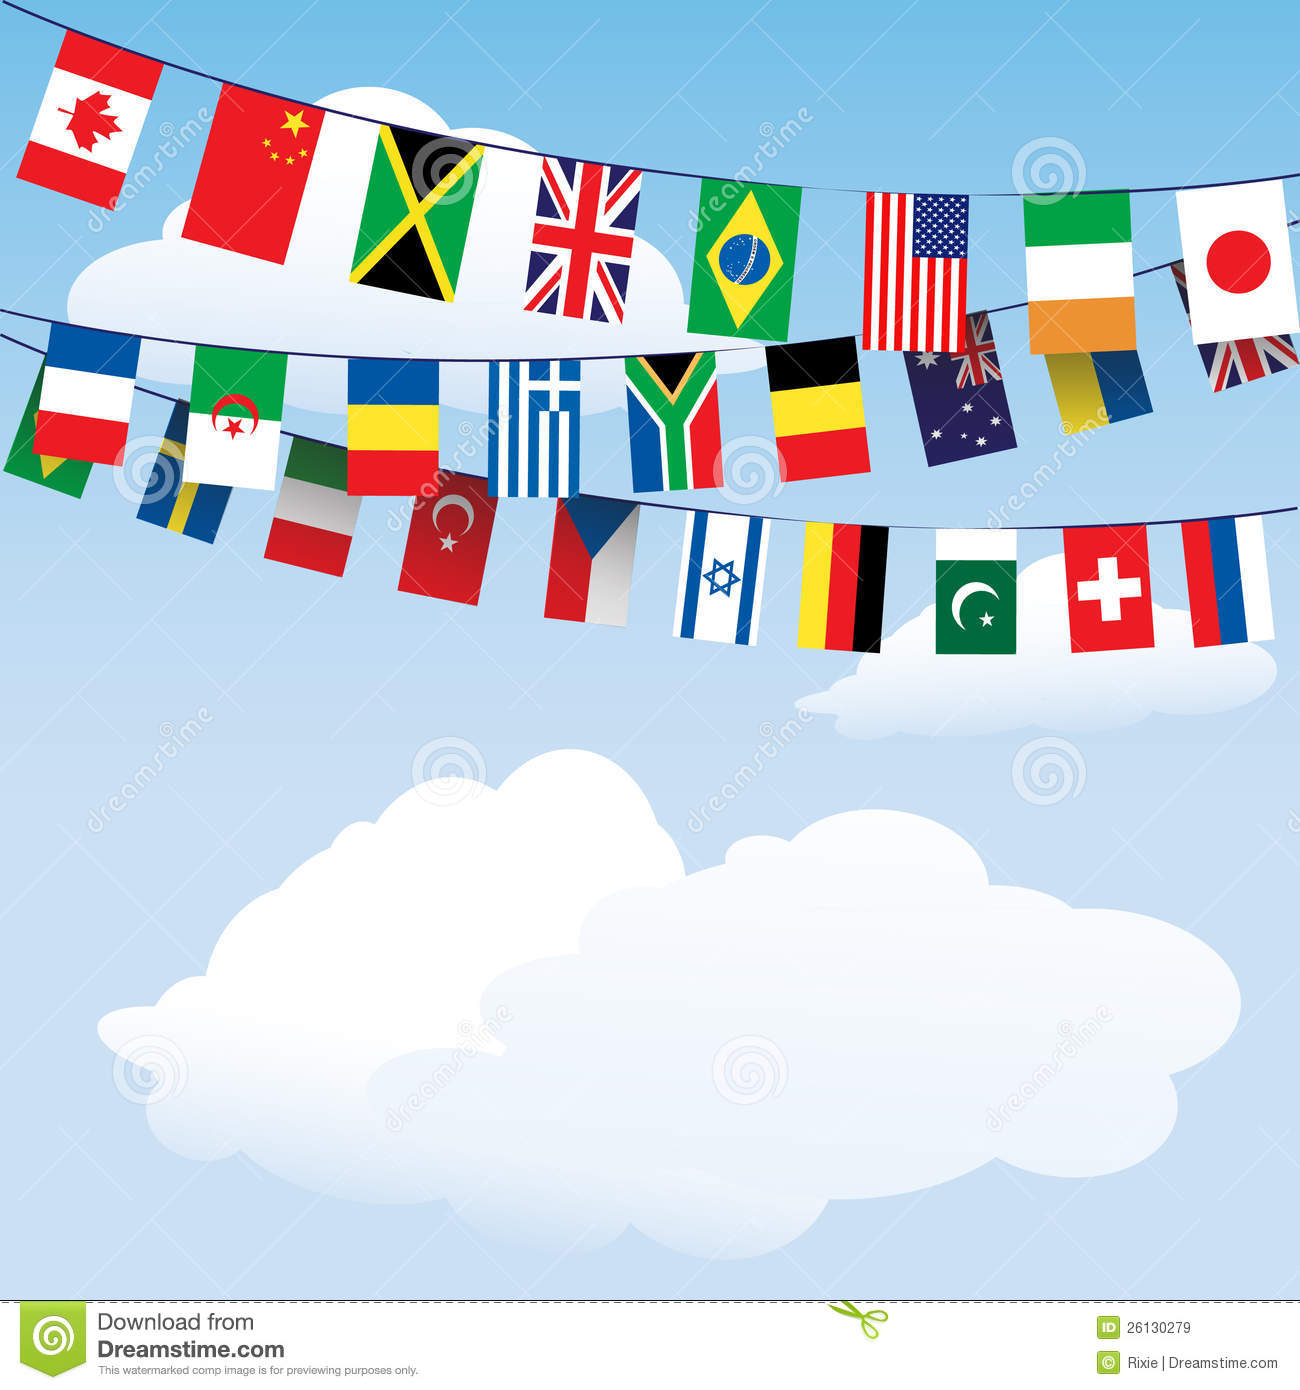 Flags Of The World Bunting Royalty Free Stock Images - Image: 26130279